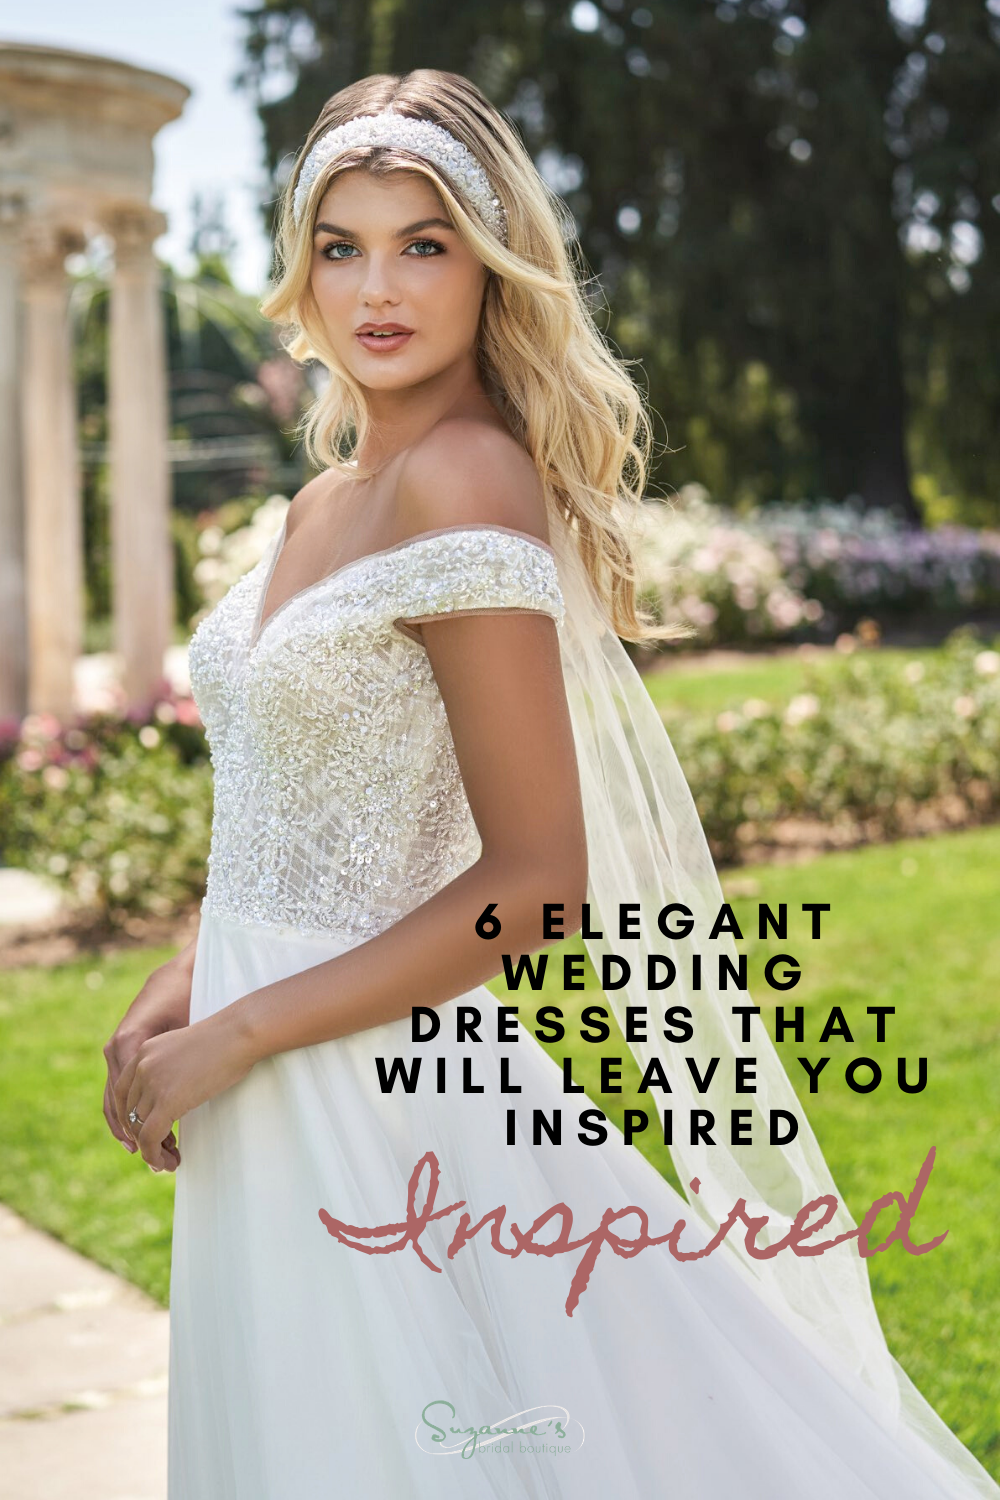 6 Elegant Wedding Dresses That Will Leave You Inspired. Desktop Image